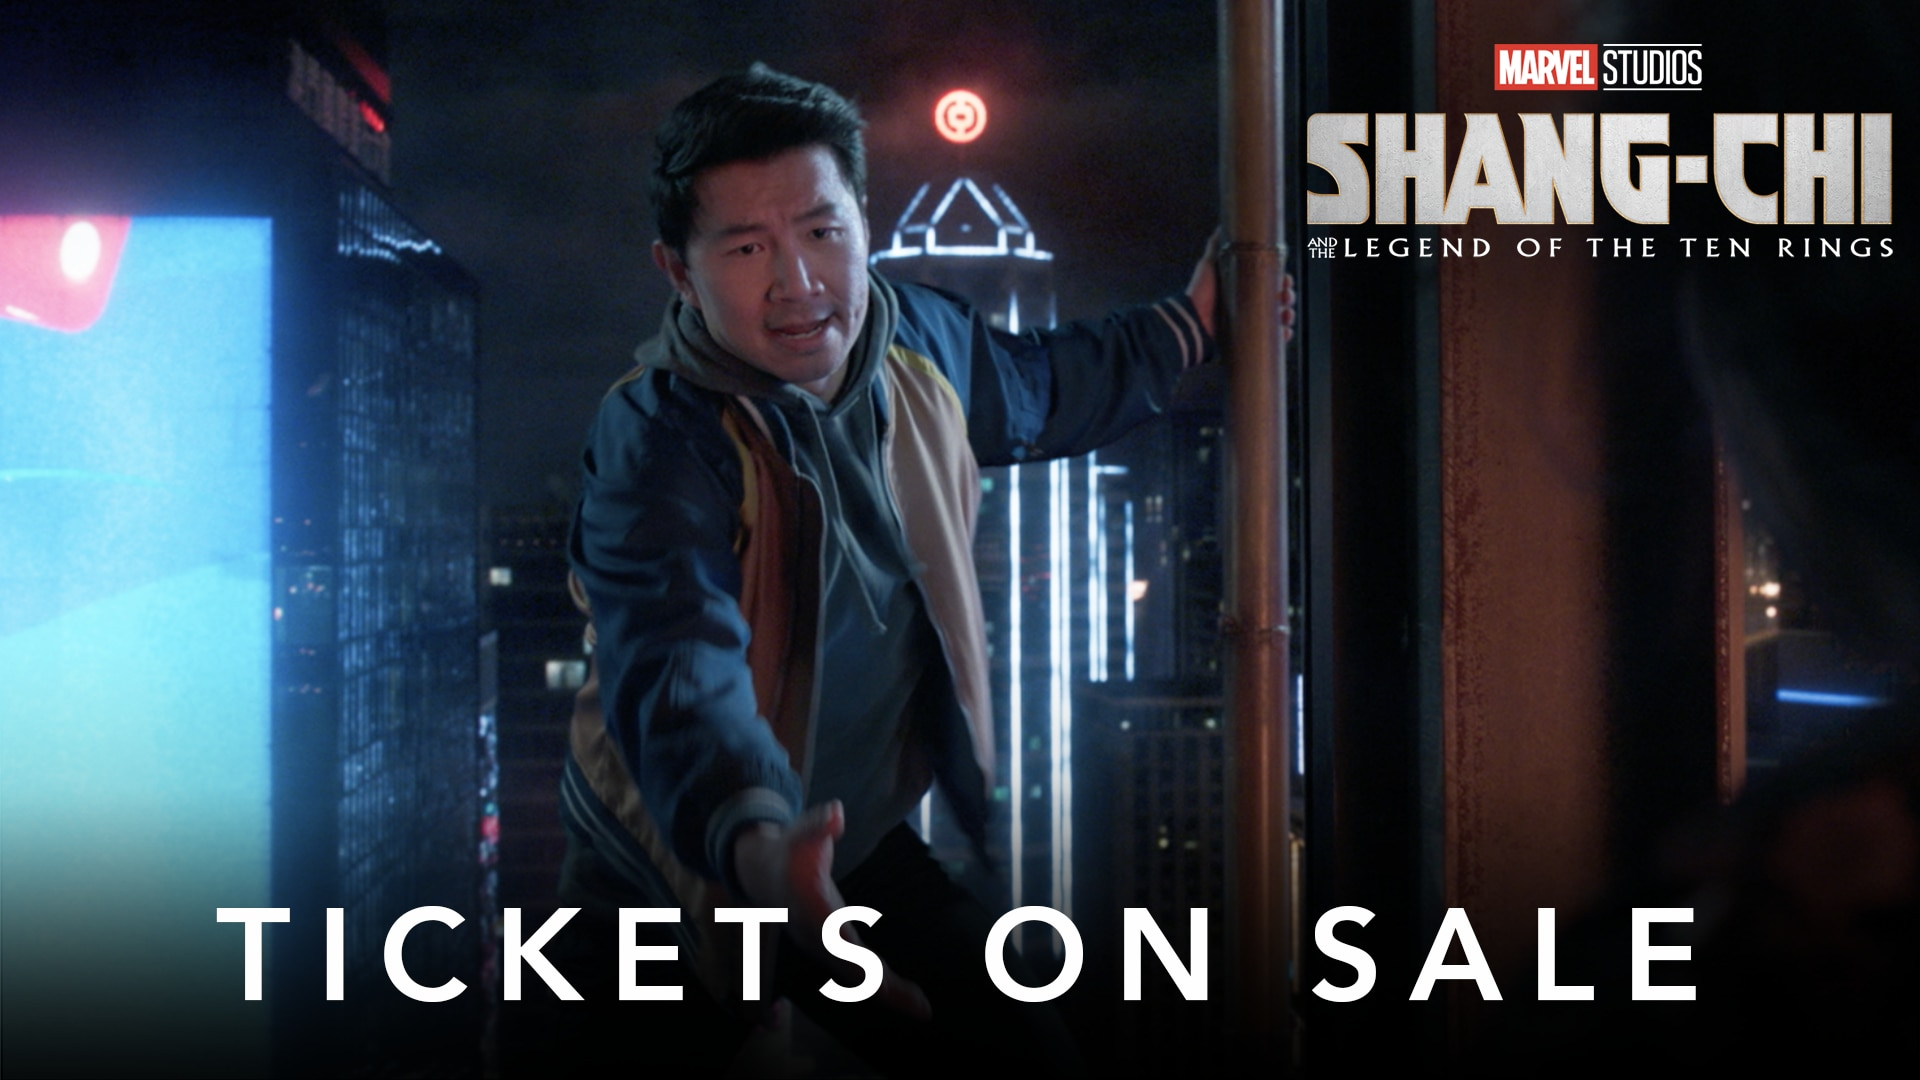 Tickets on Sale   Marvel Studios' Shang-Chi and the Legend of the Ten Rings